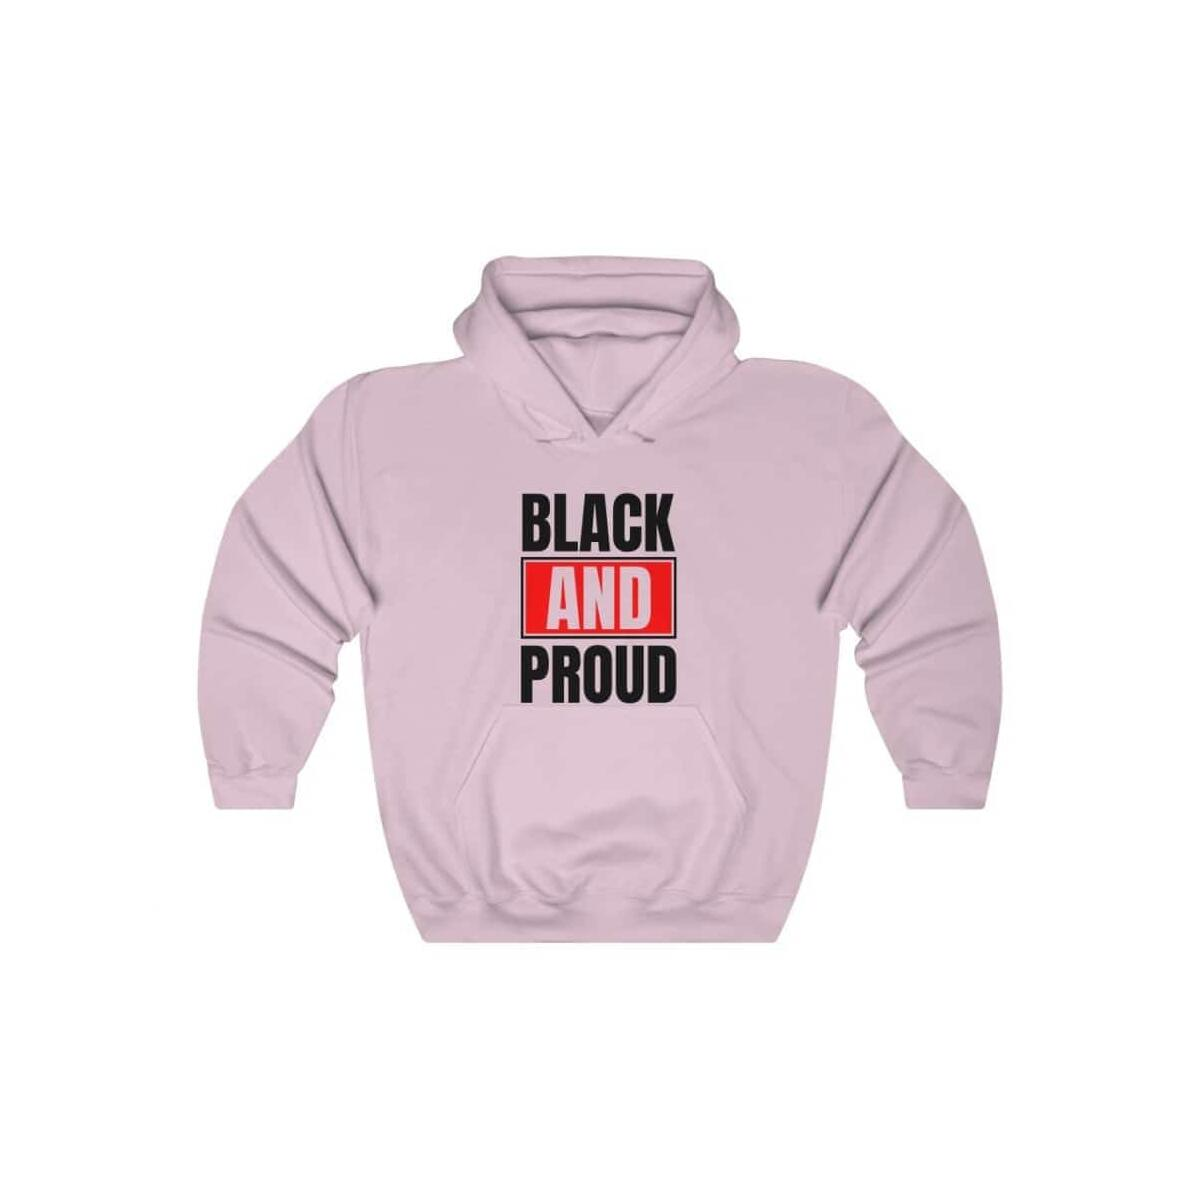 Afrocentric BLACK AND PROUD Hooded Sweatshirt, Light Pink / 5XL